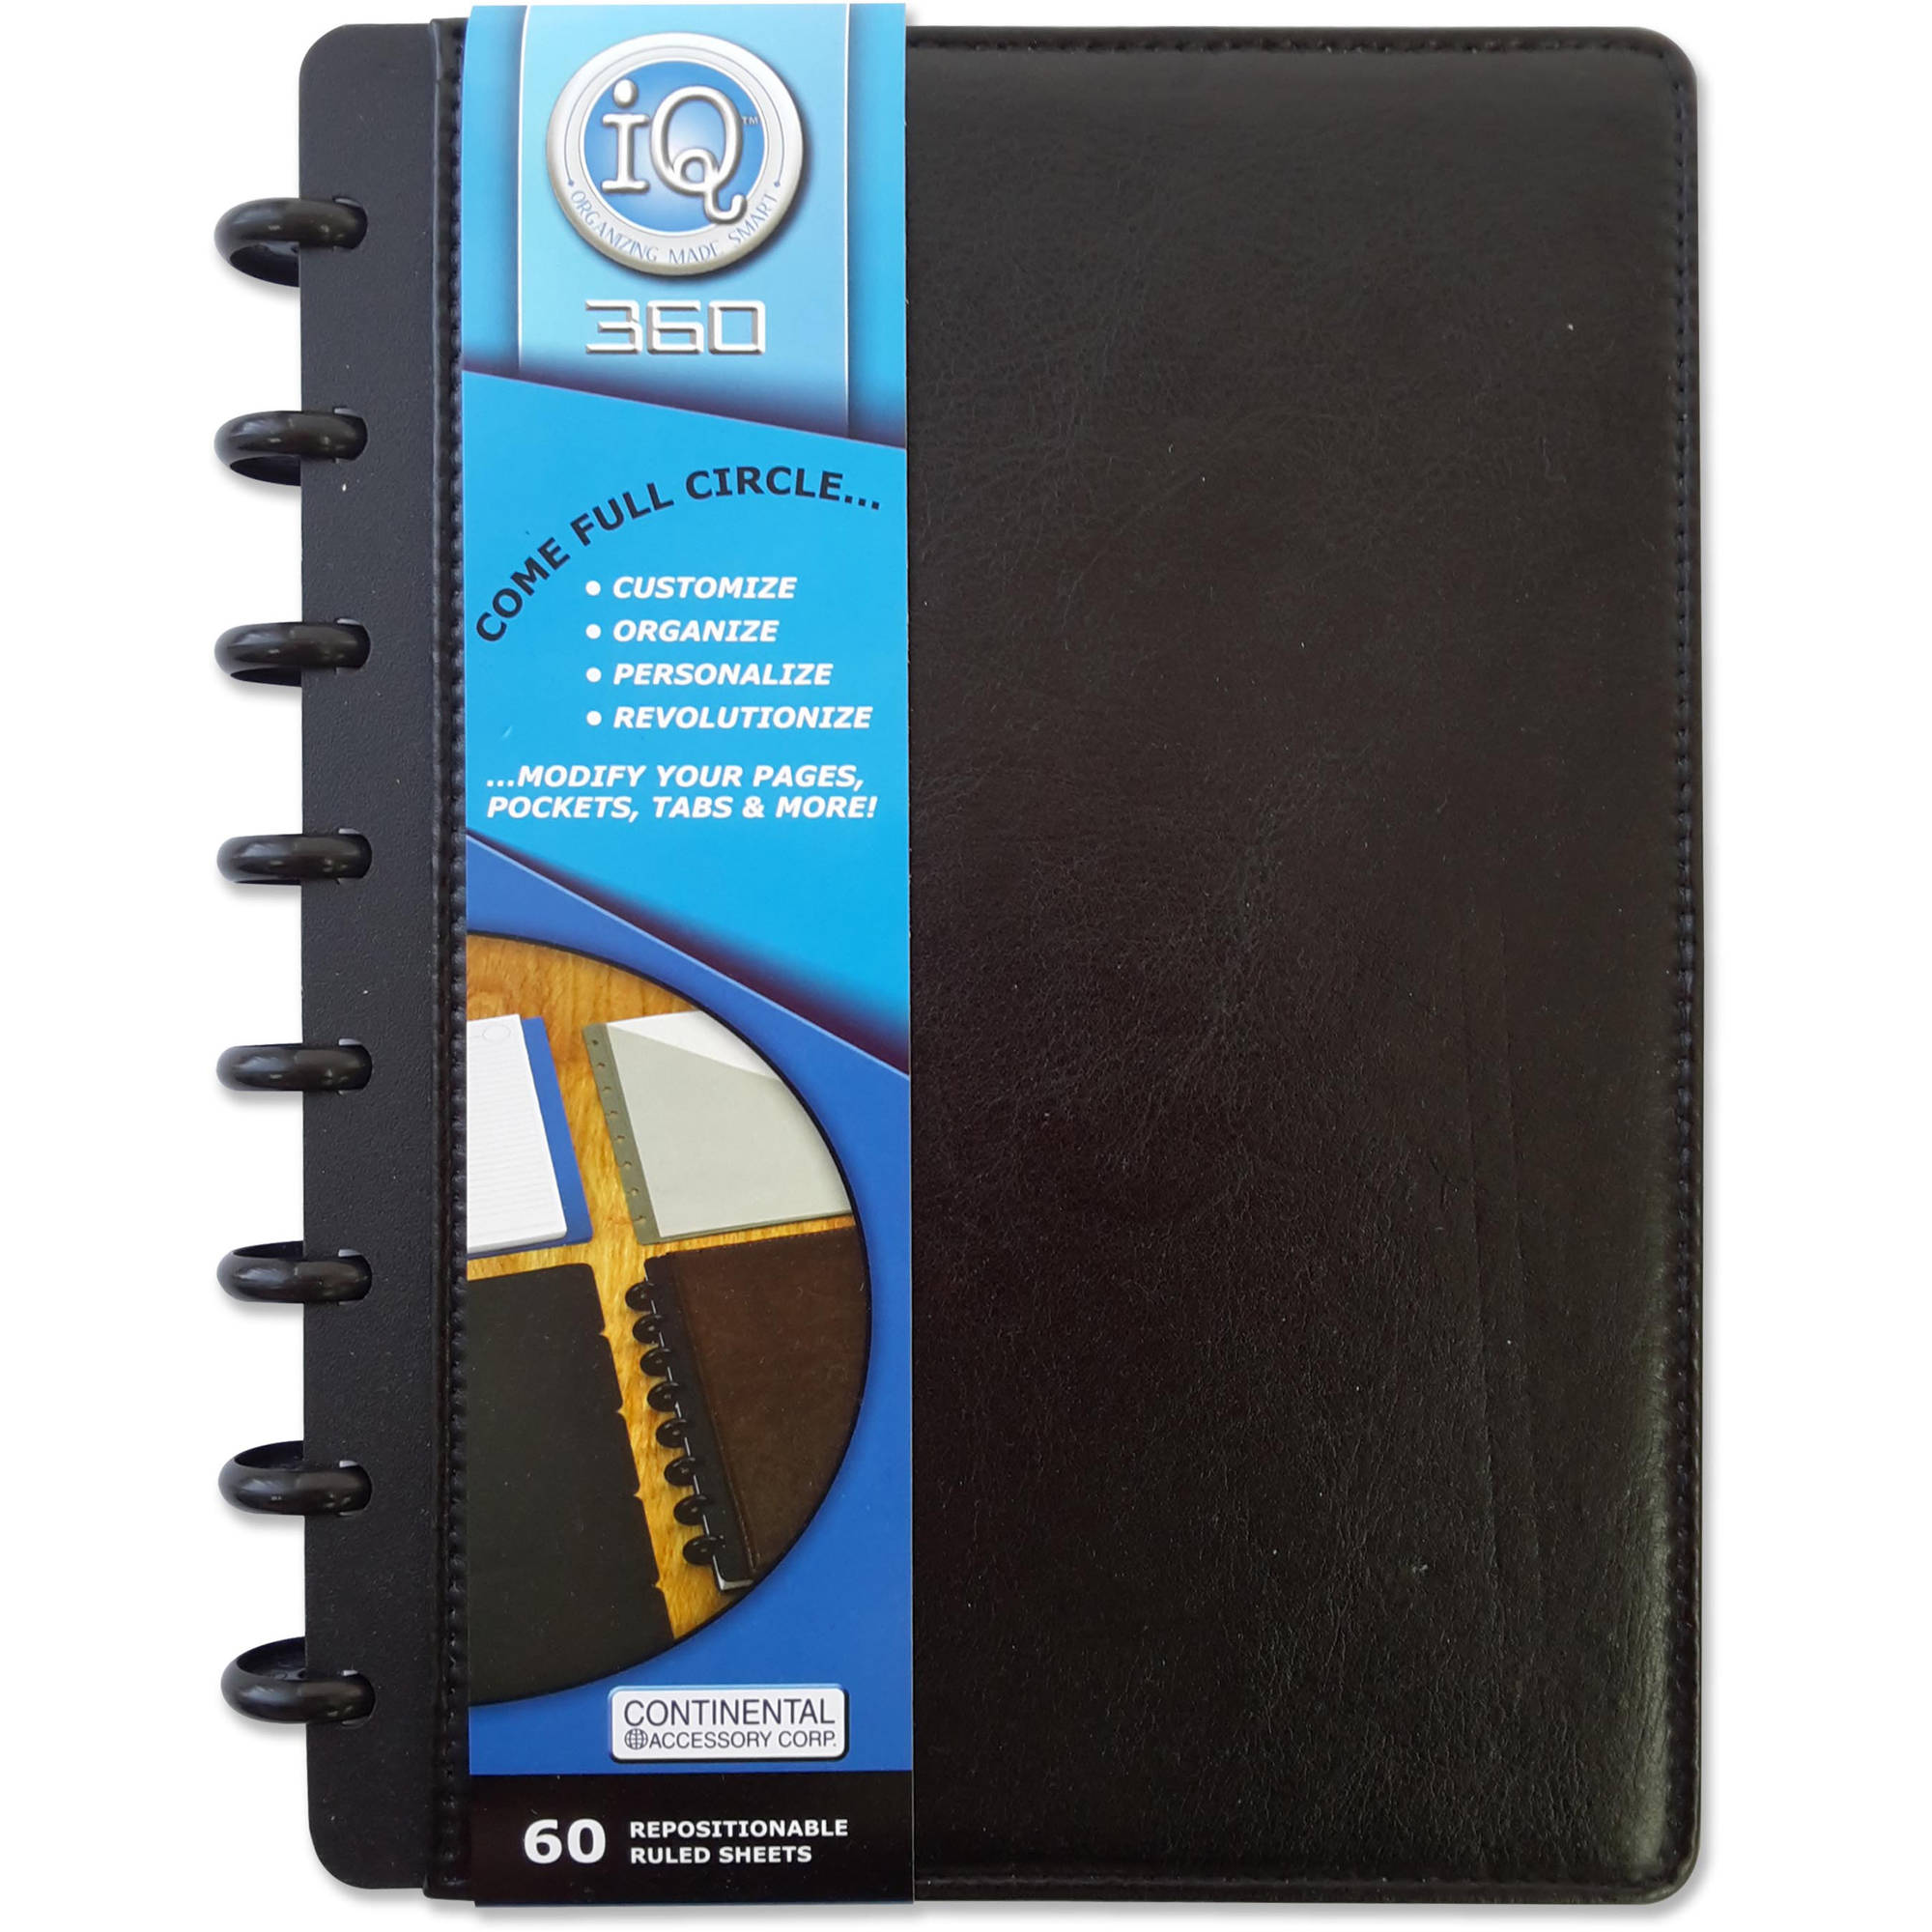 Planner by Iq 360